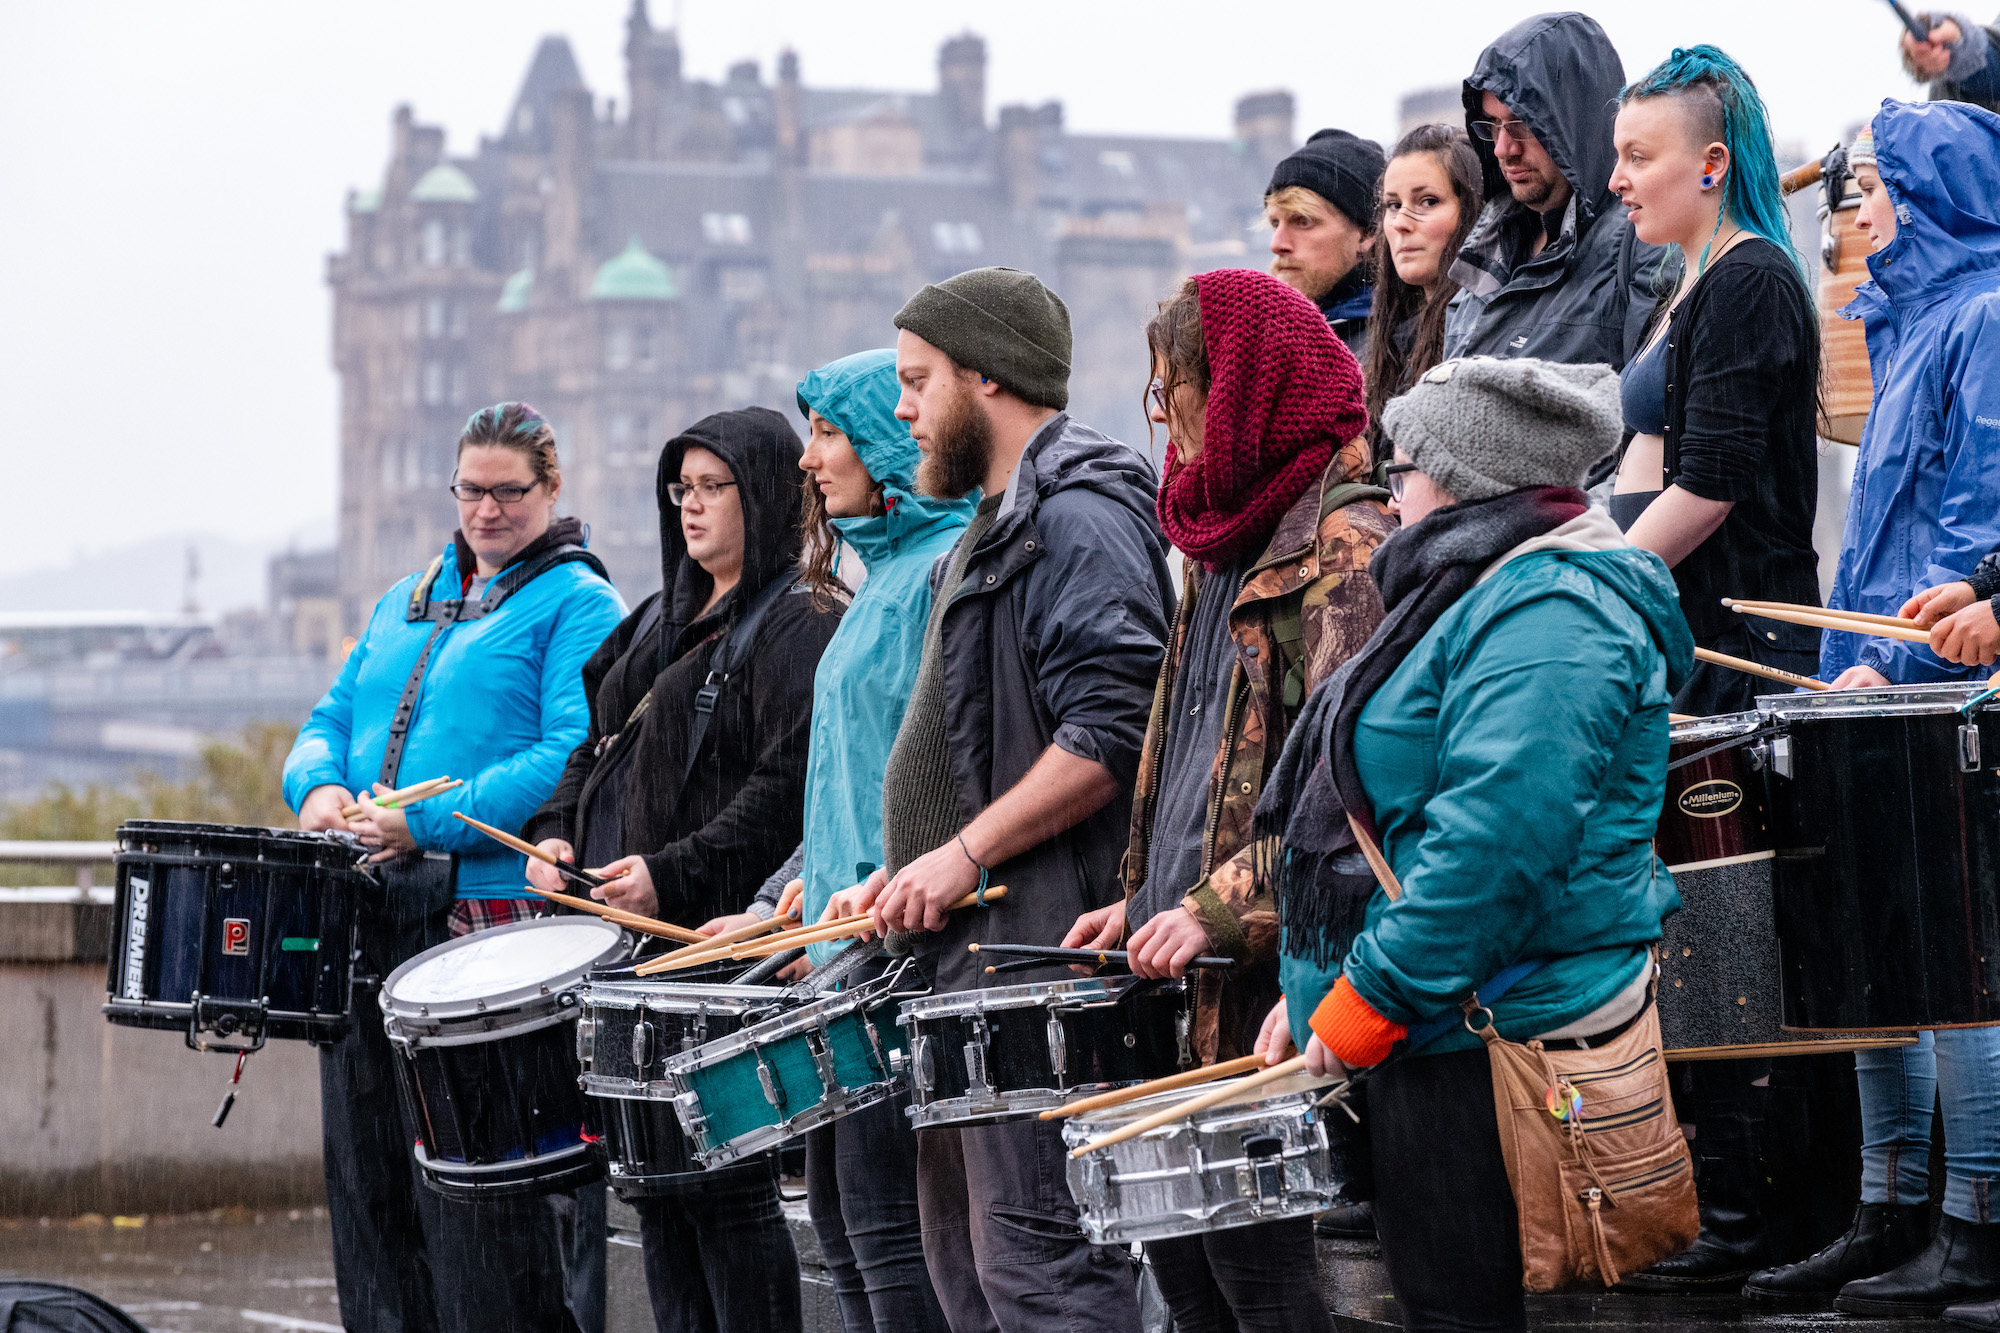 Drumming the community's heartbeat with The Winter drummers